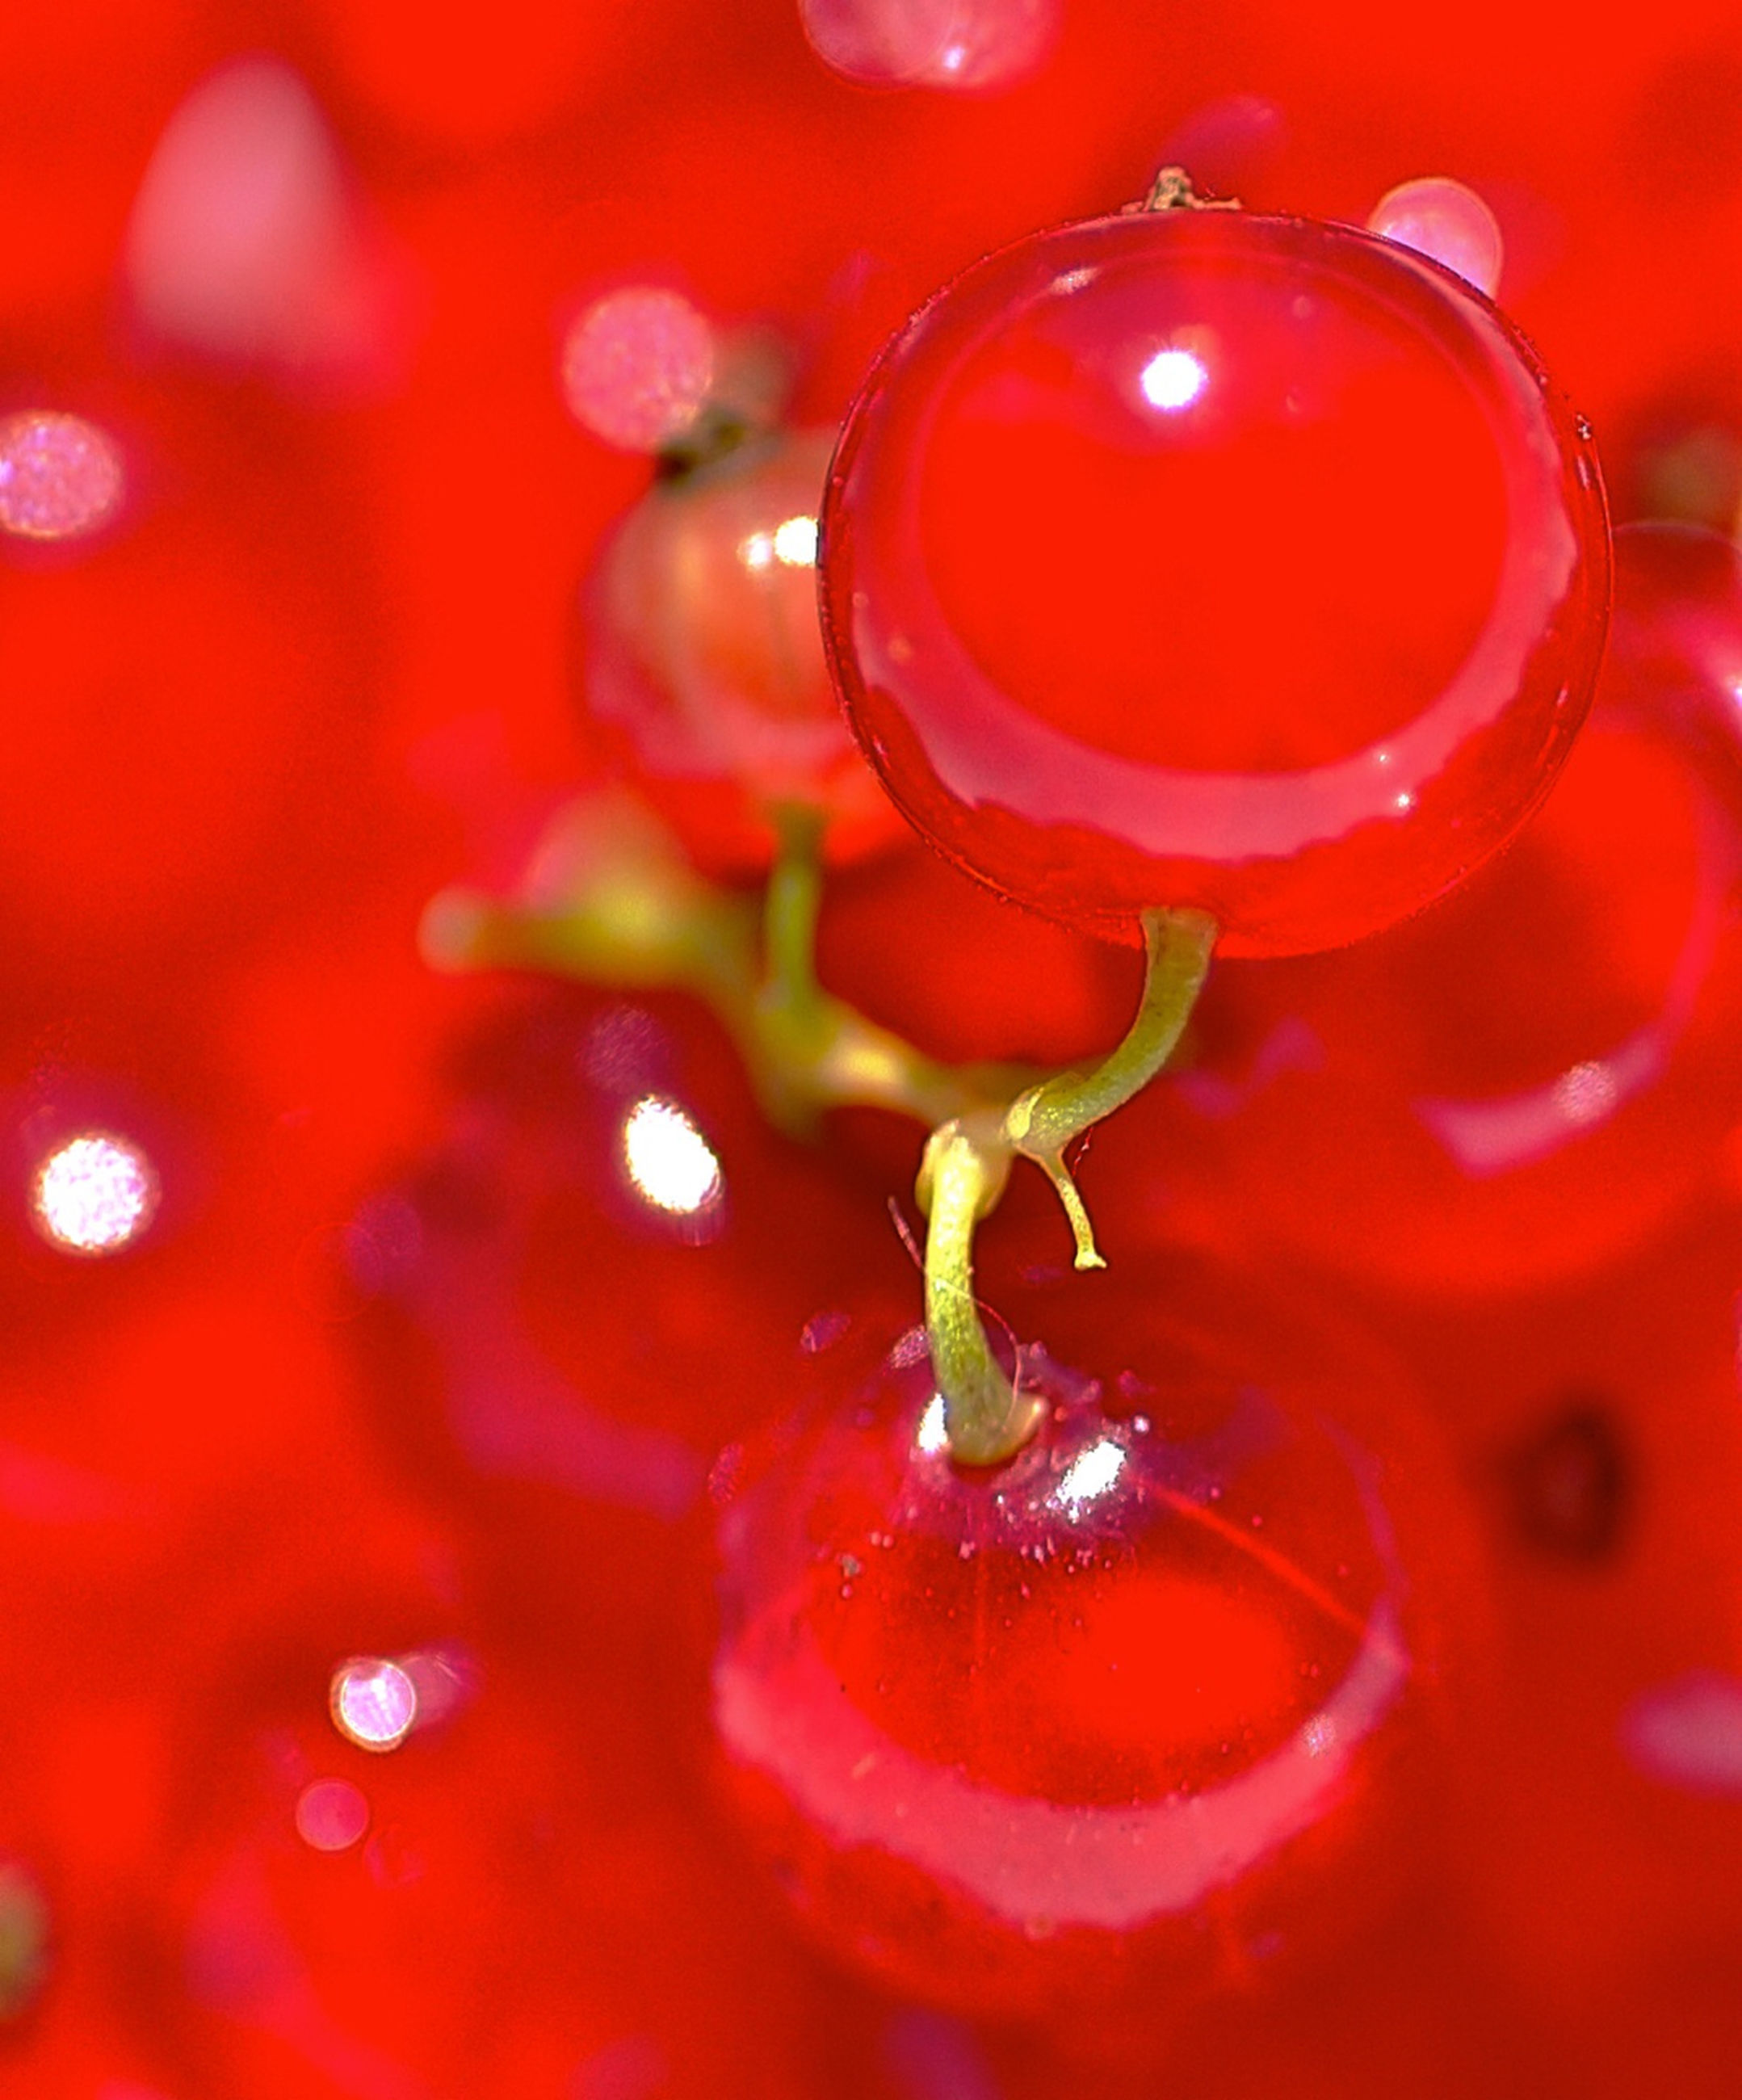 red, freshness, close-up, water, drop, food and drink, wet, selective focus, healthy eating, indoors, focus on foreground, no people, still life, food, backgrounds, full frame, detail, fruit, vibrant color, day